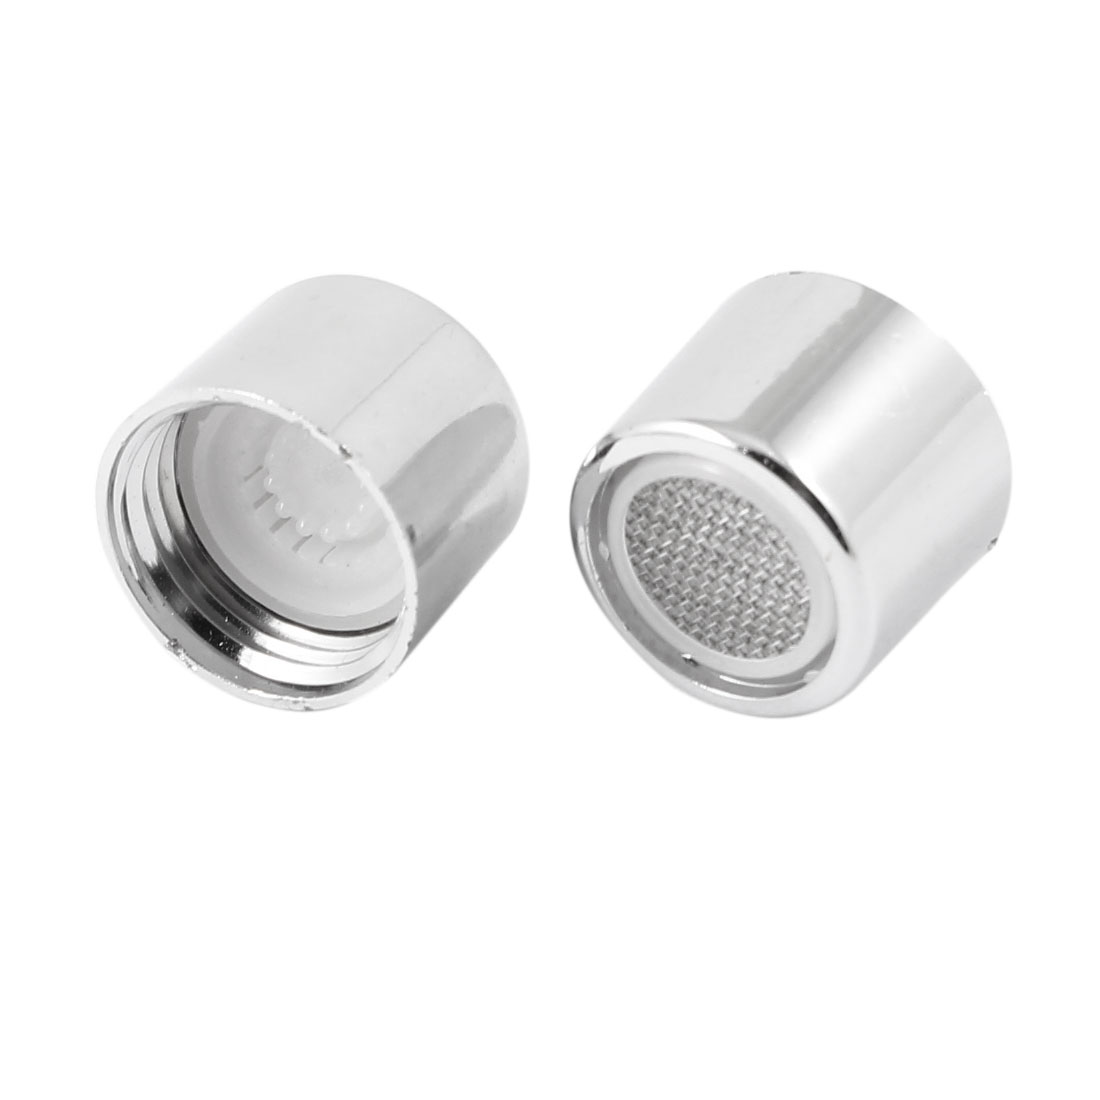 2pcs Plastic Water Saving Faucet Tap Spout Aerator Filter Net Nozzle